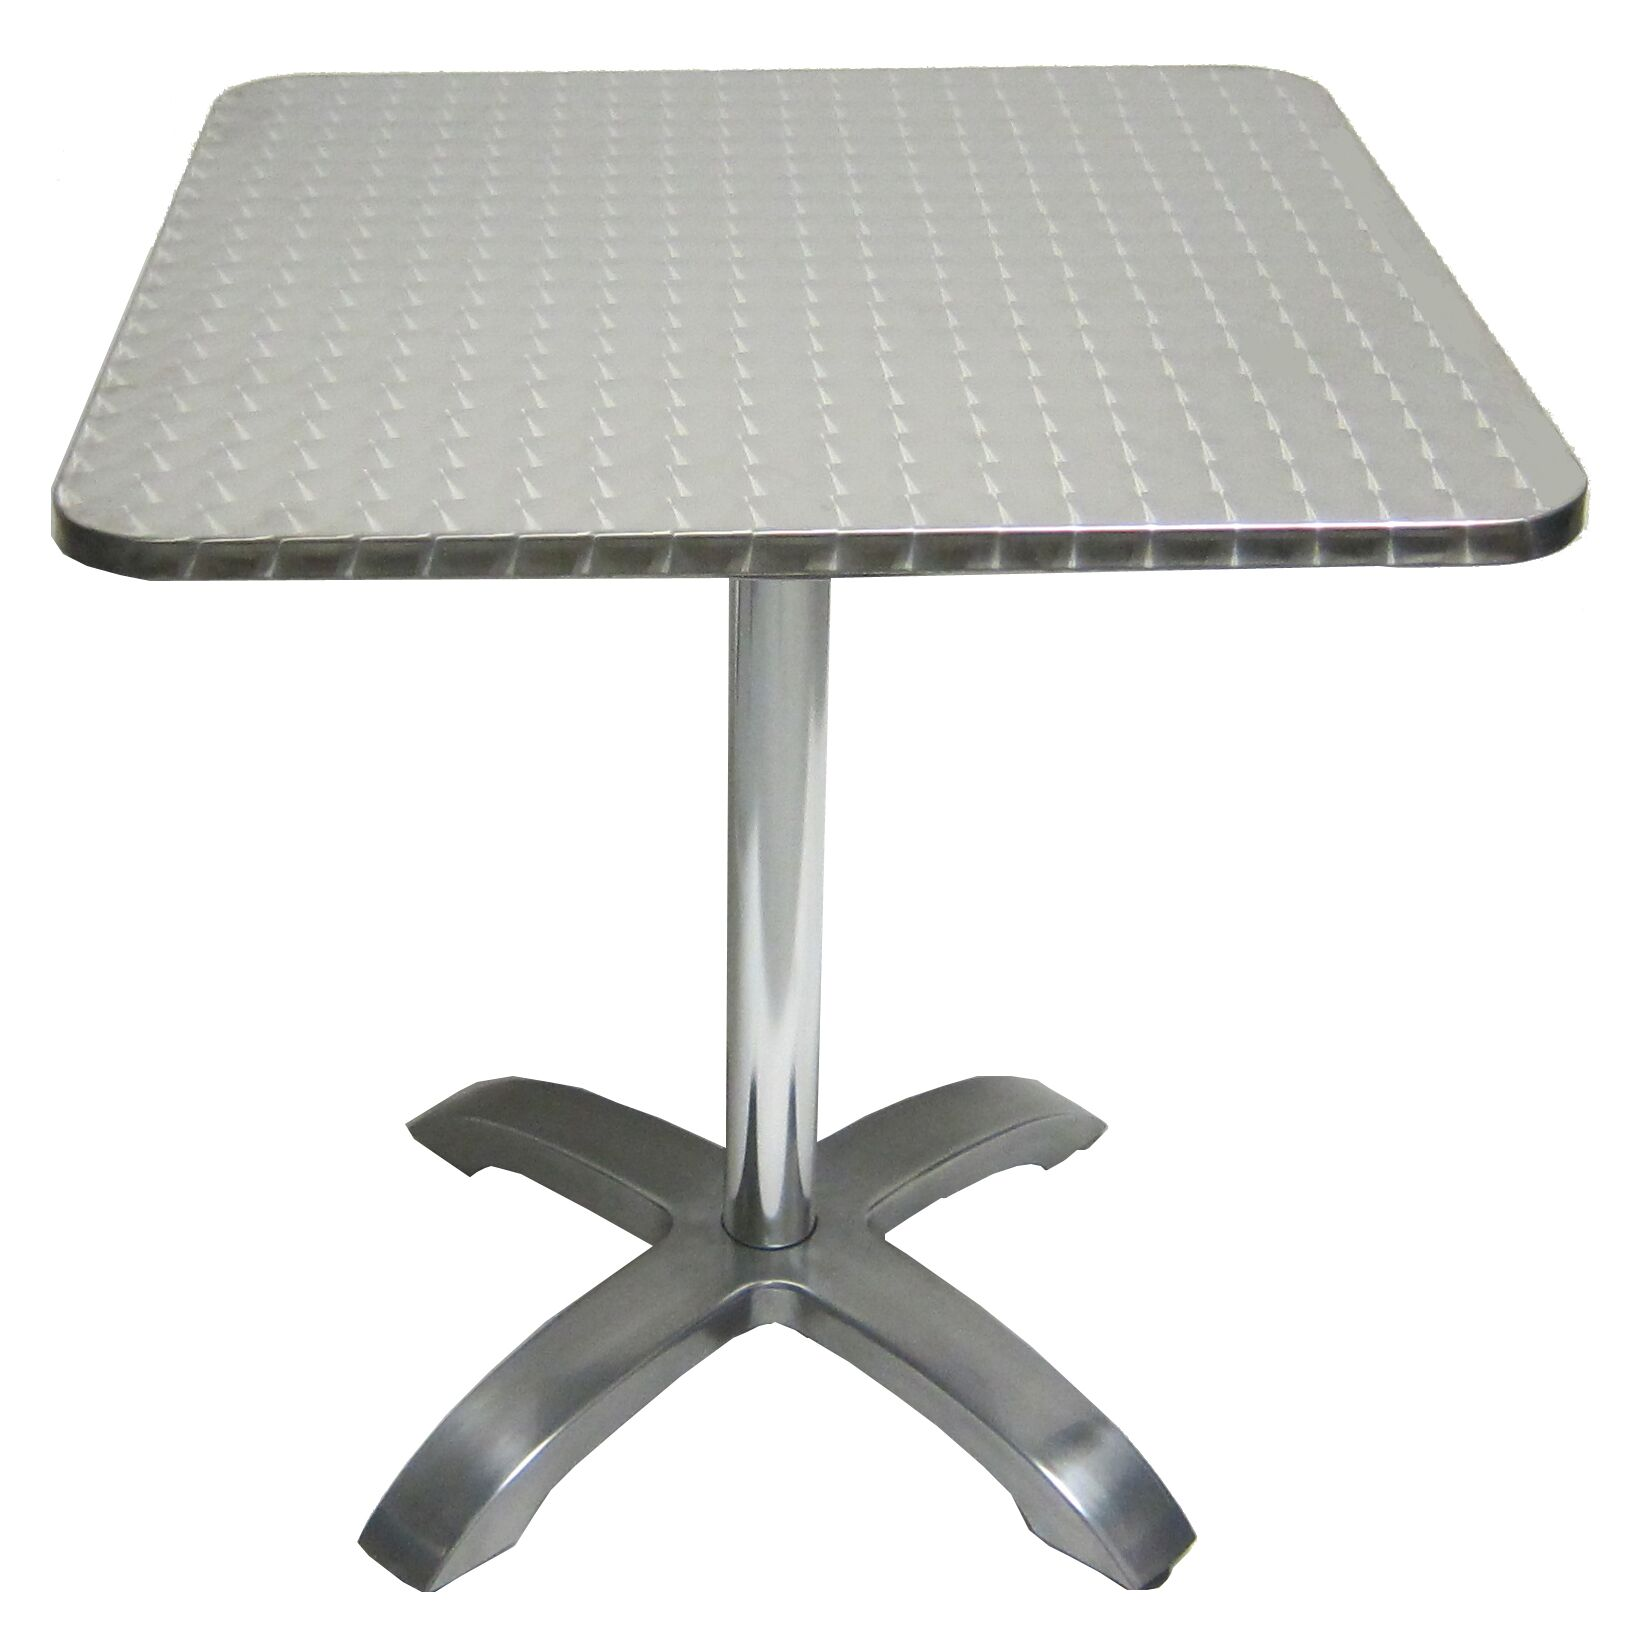 Stainless Restaurant Table Stainless Aluminum Square Indoor Outdoor Table